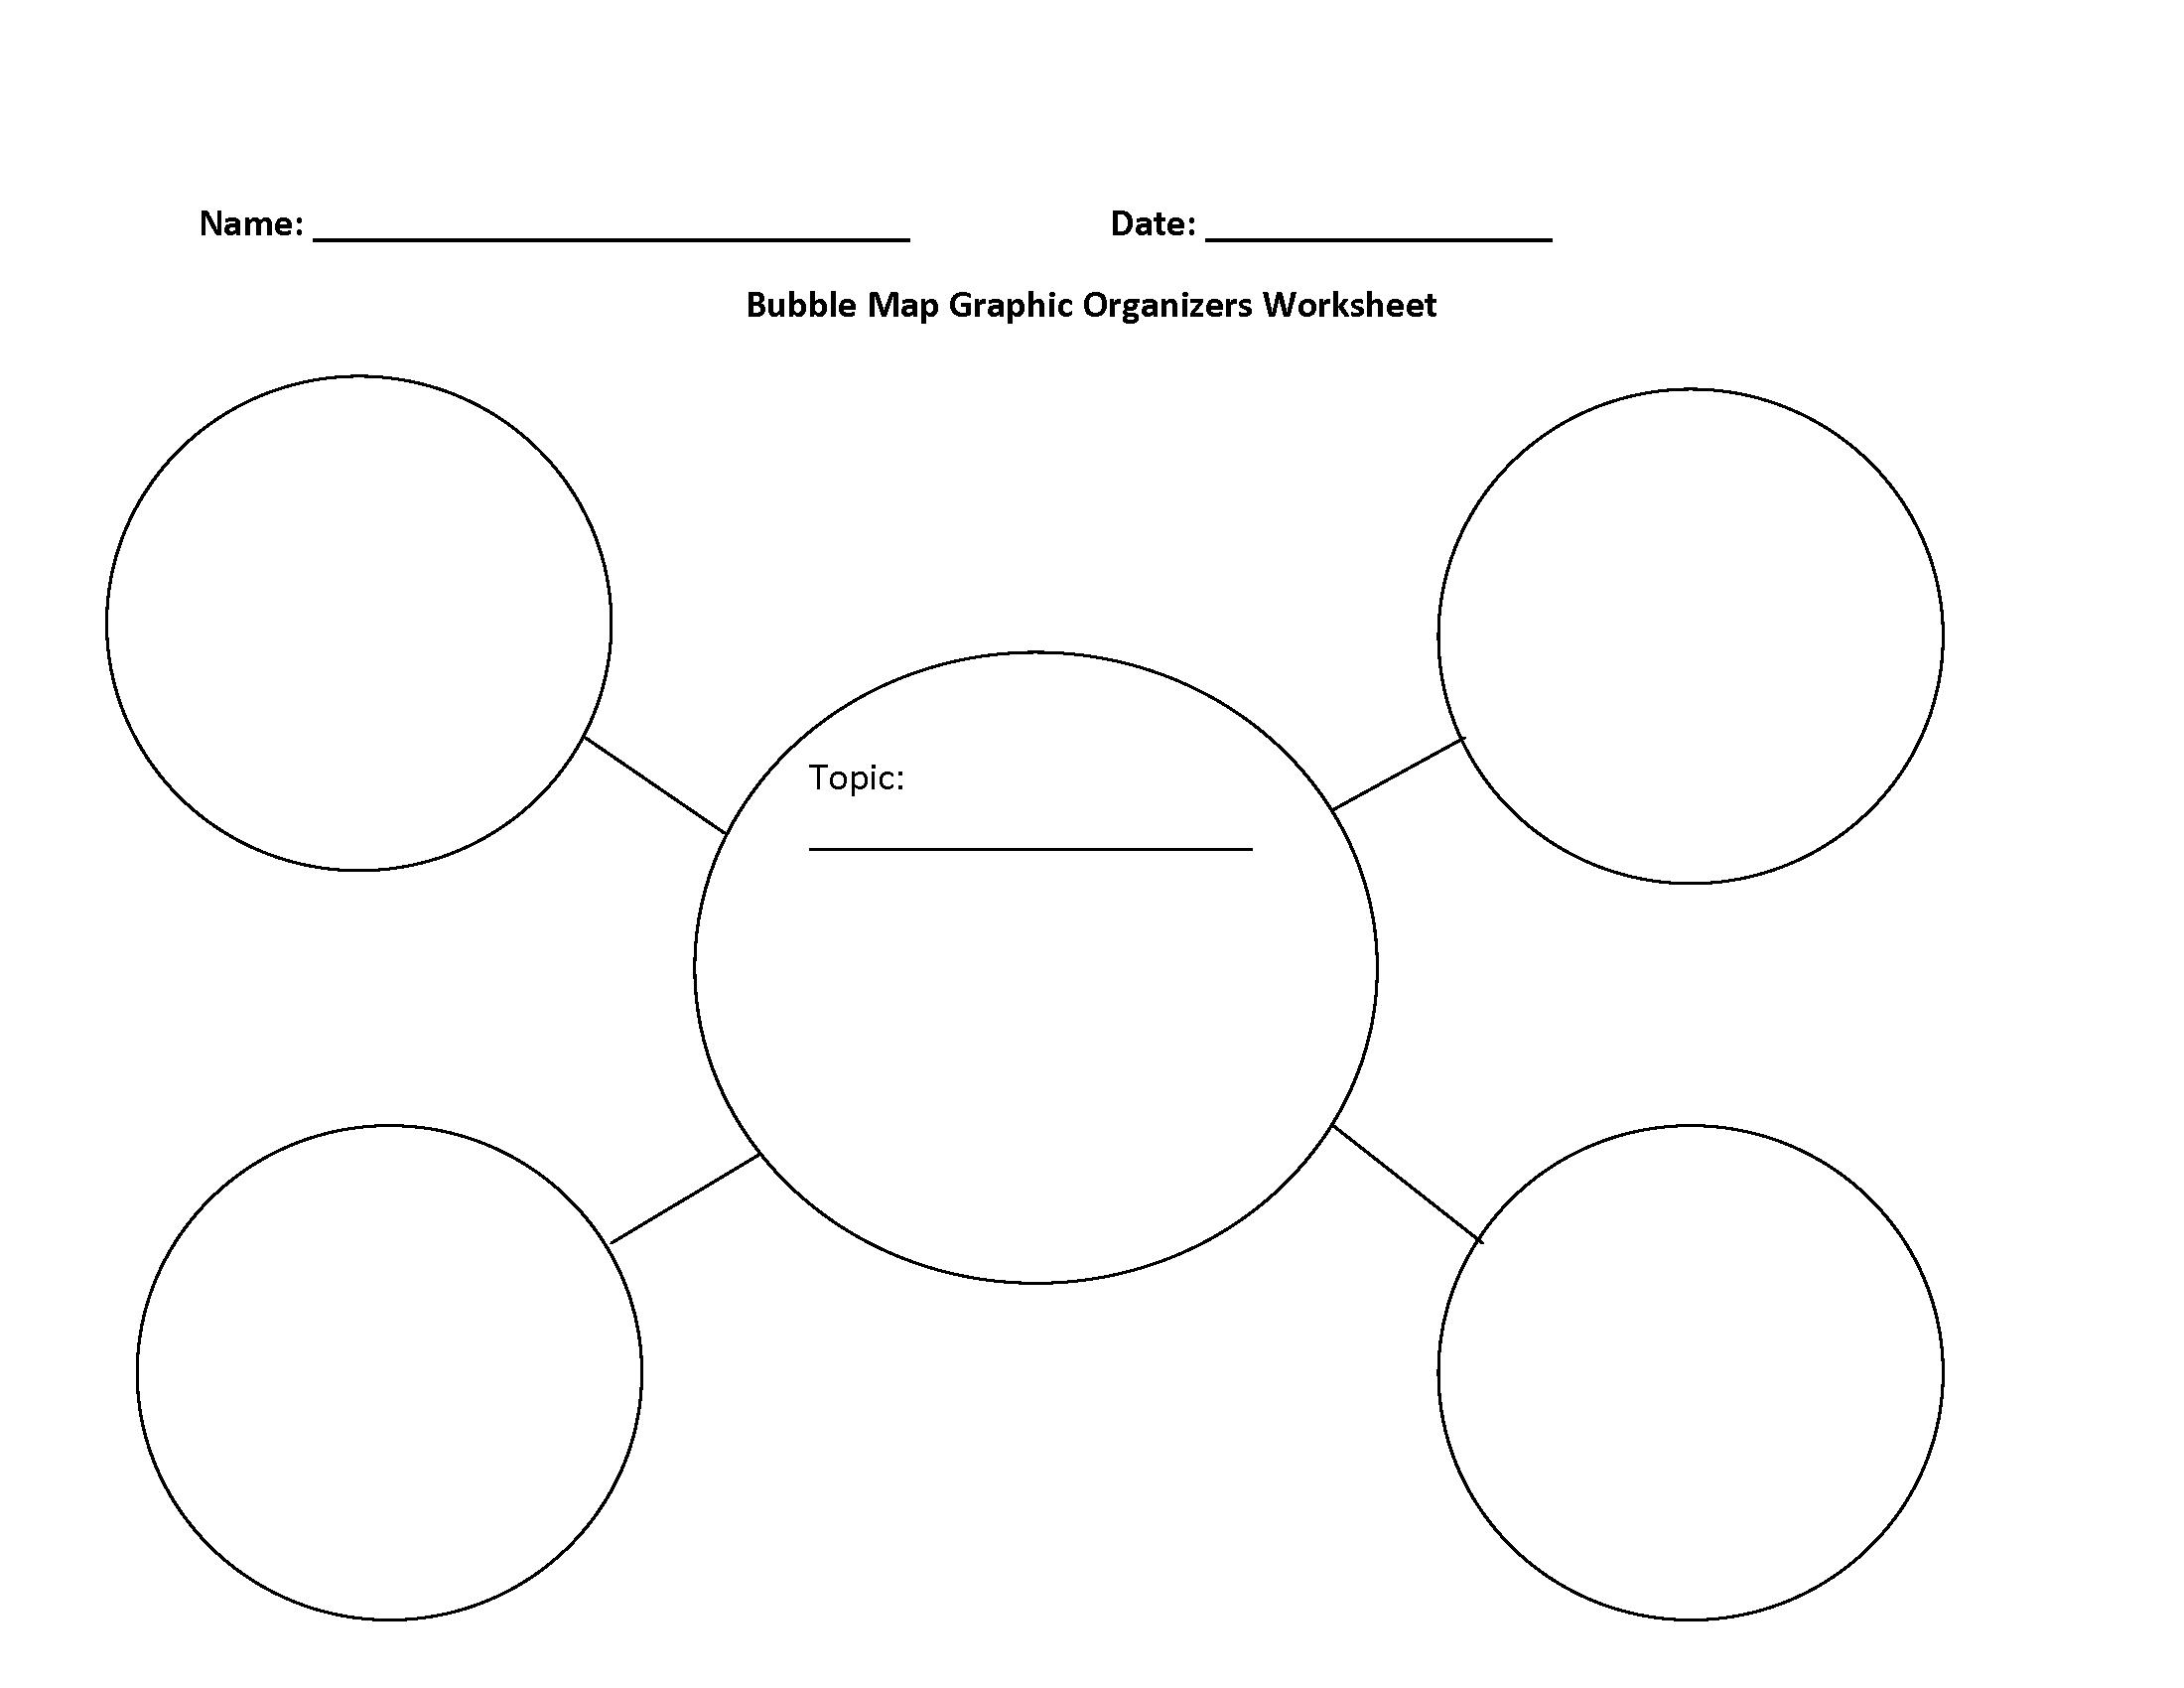 Englishlinx | Graphic Organizers Worksheets - Free Printable Graphic Organizers